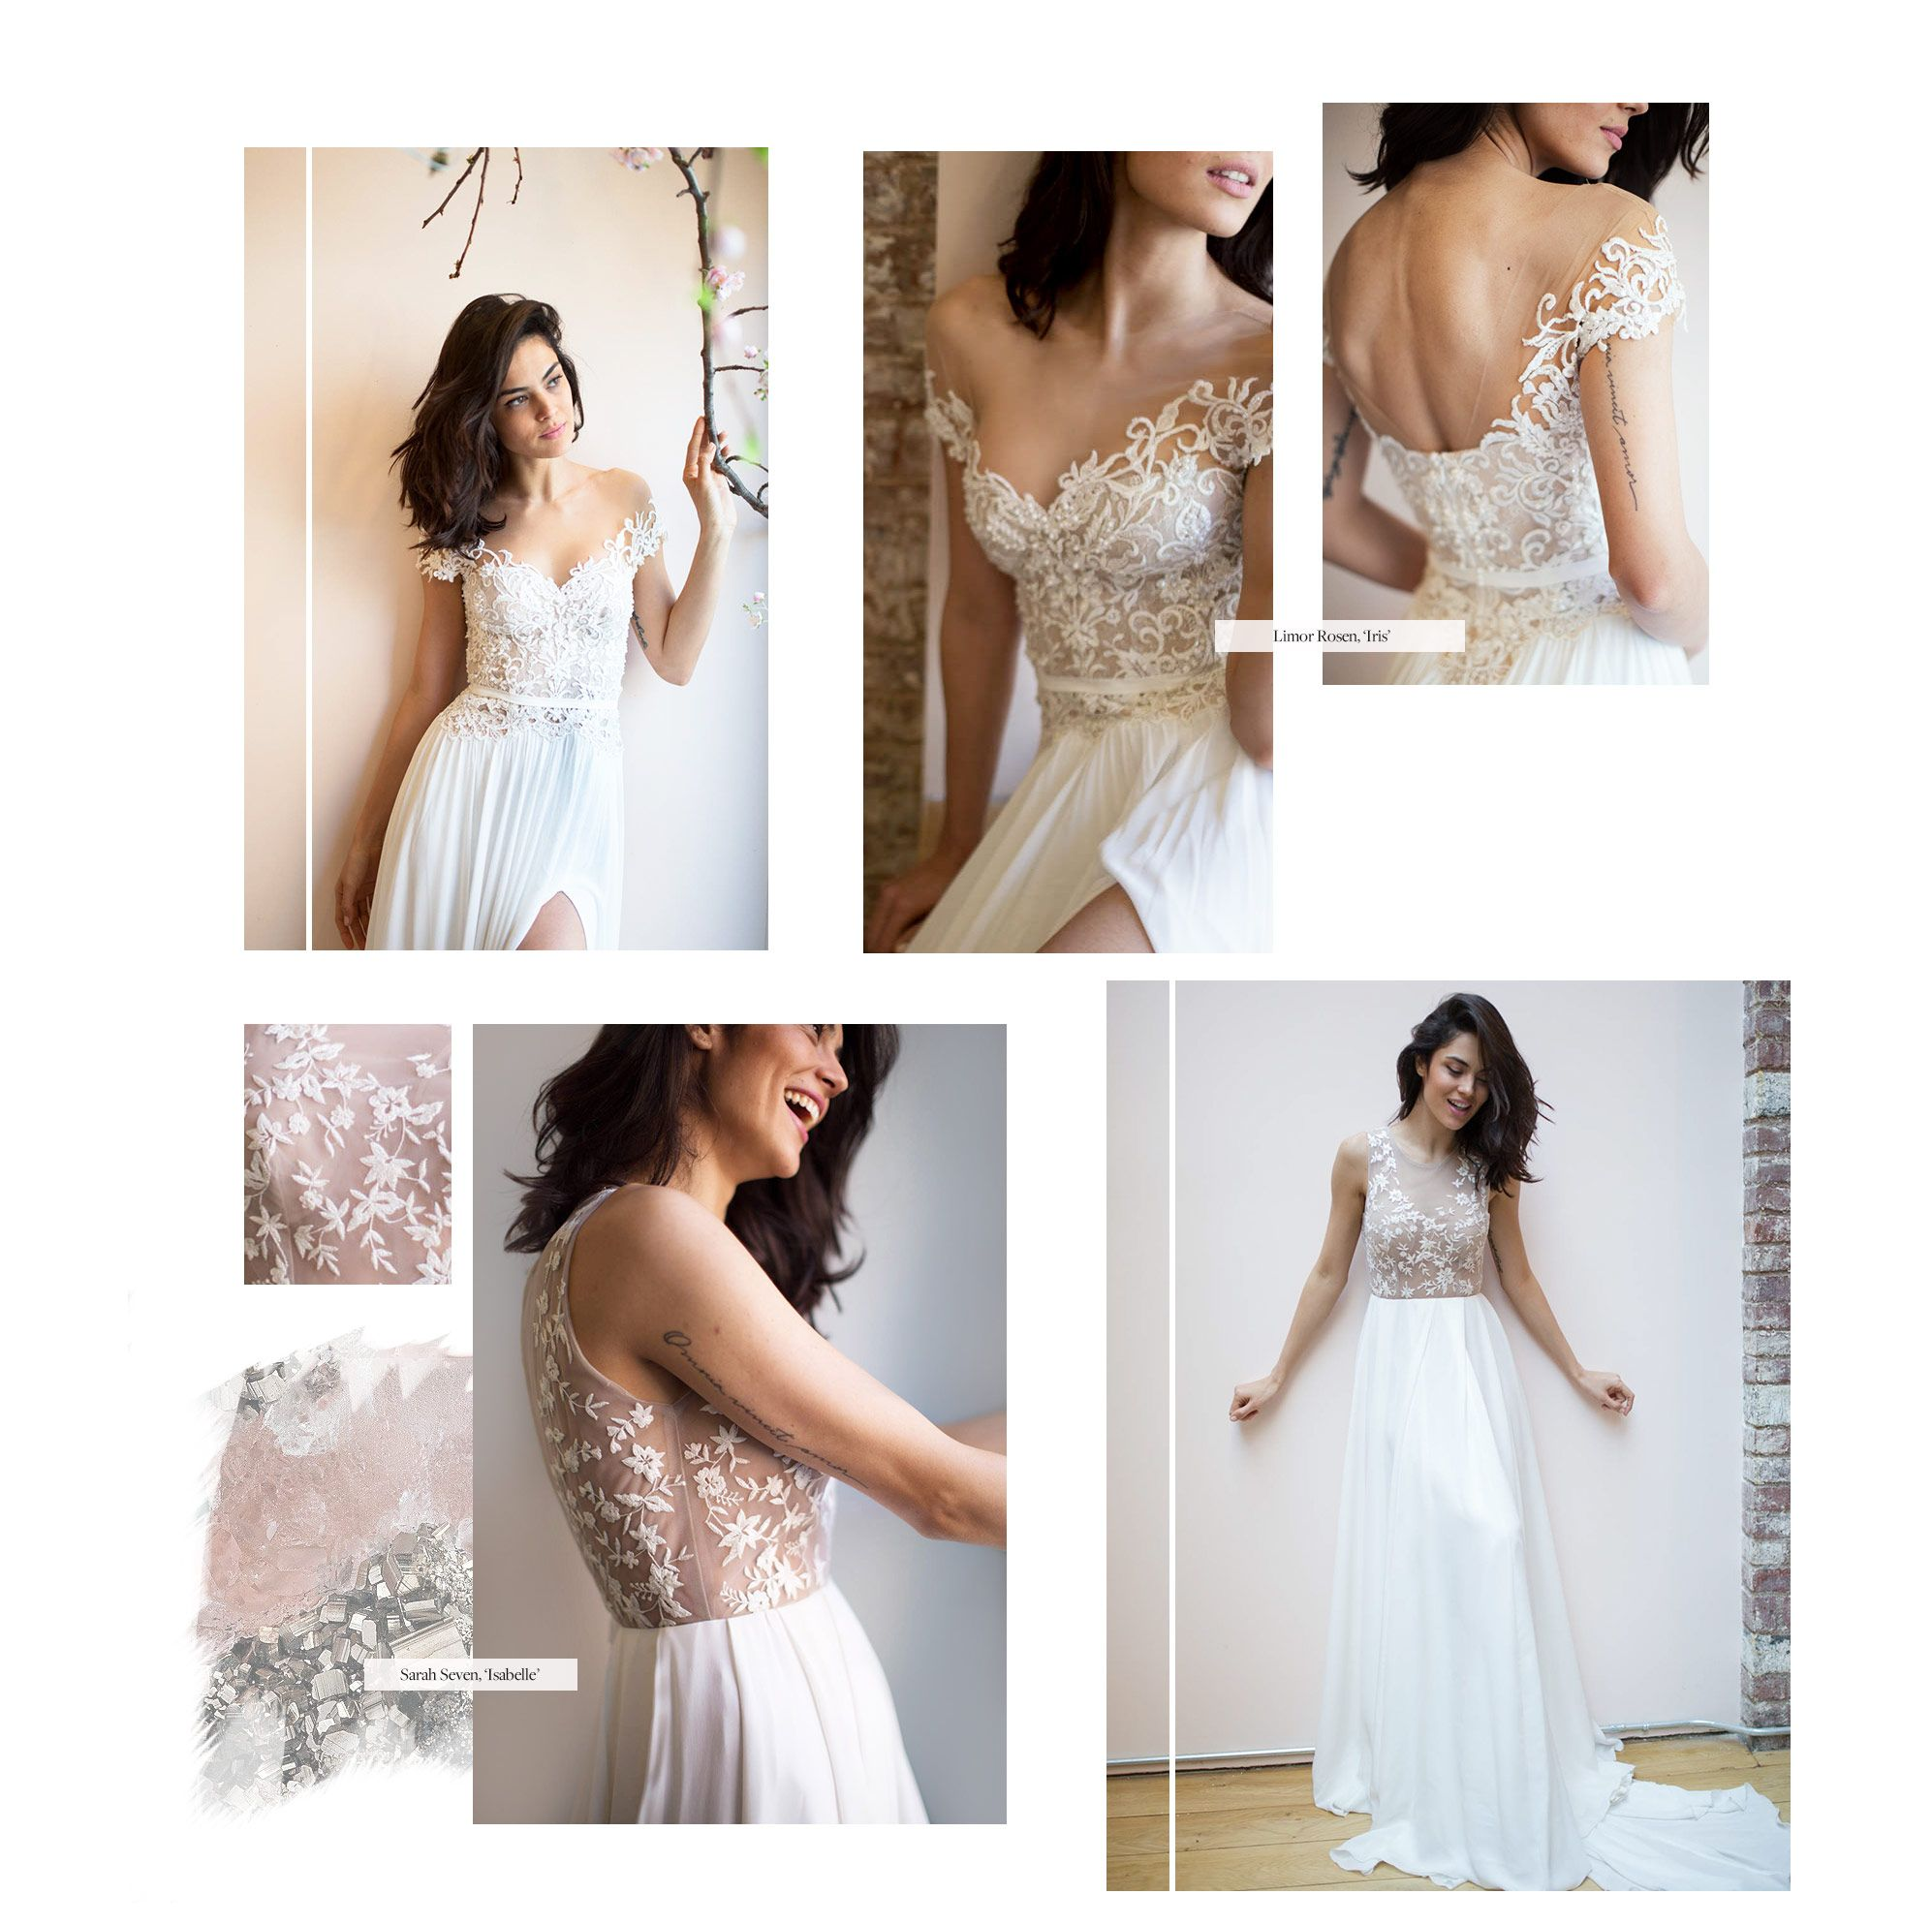 Bridal inspiration for wedding gowns, dresses, accessories with ...